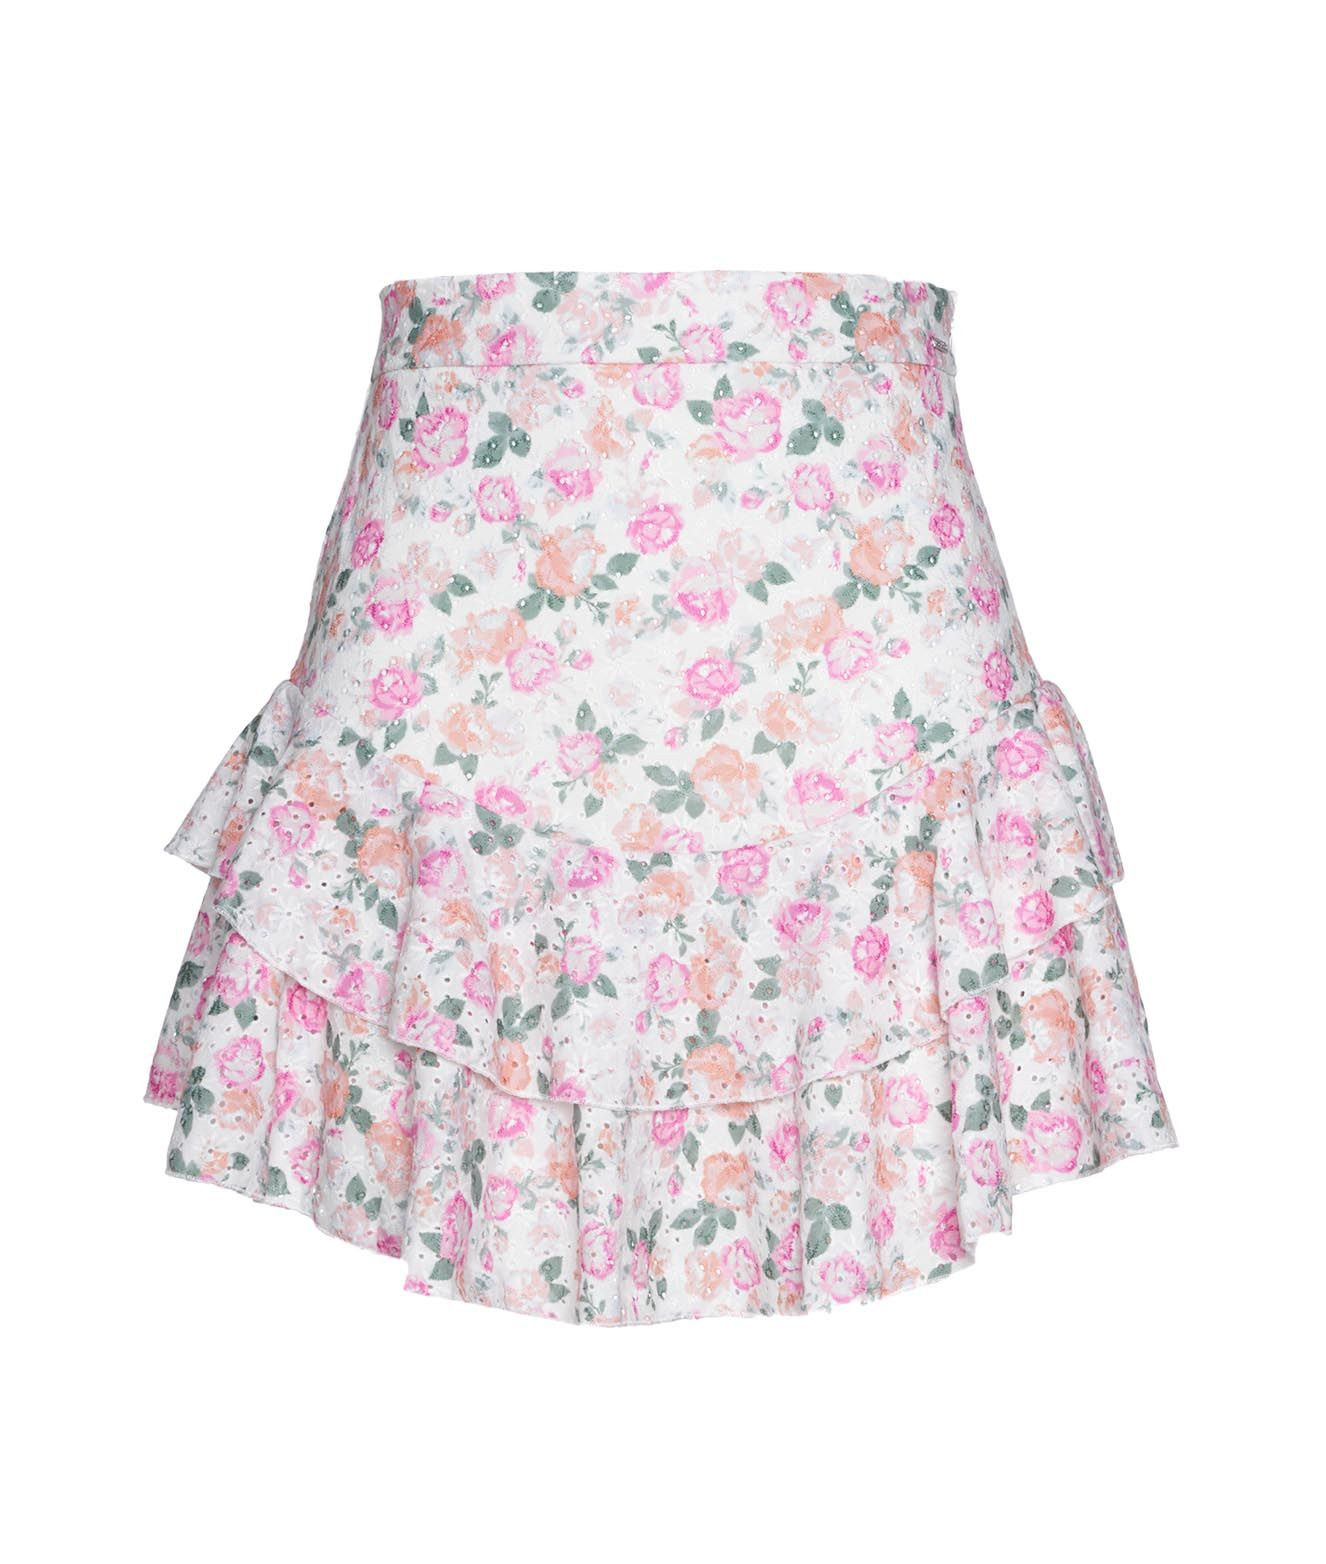 Guess Skirts GUESS WOMEN'S MULTICOLOR OTHER MATERIALS SKIRT